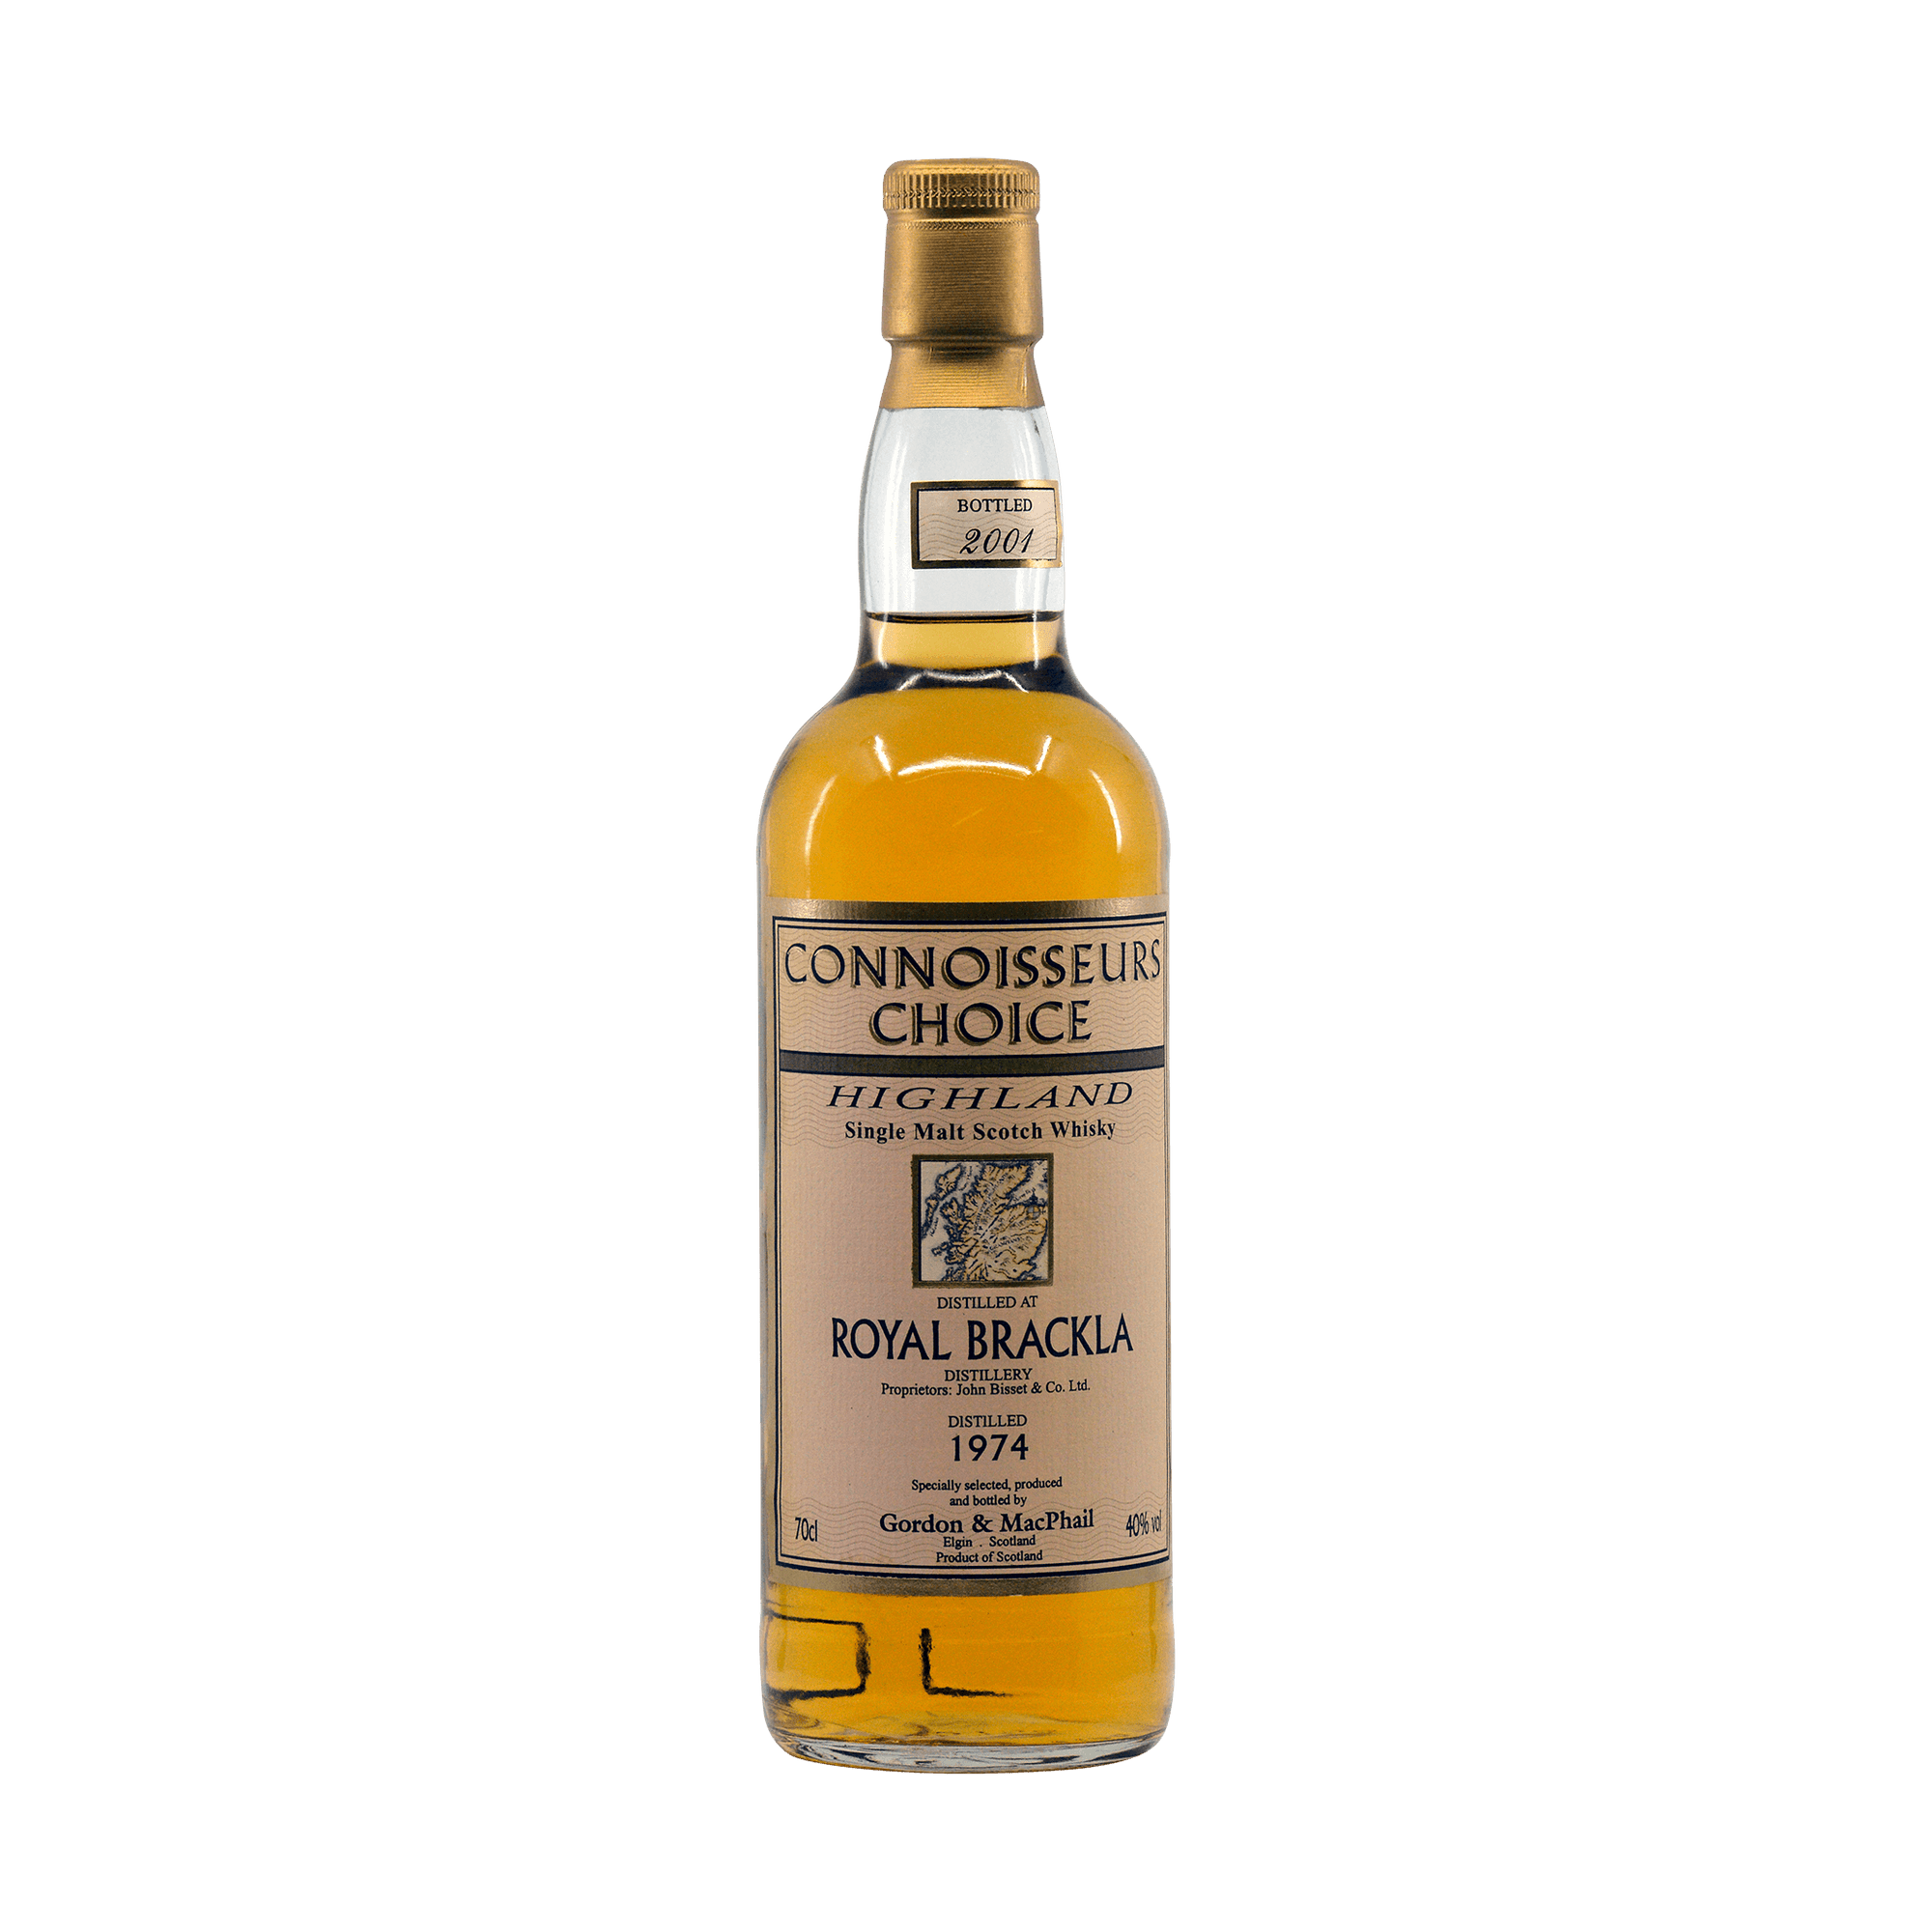 Royal Brackla 1974 27 Year Old 'Connoisseurs Choice' Gordon & MacPhail 40.00%